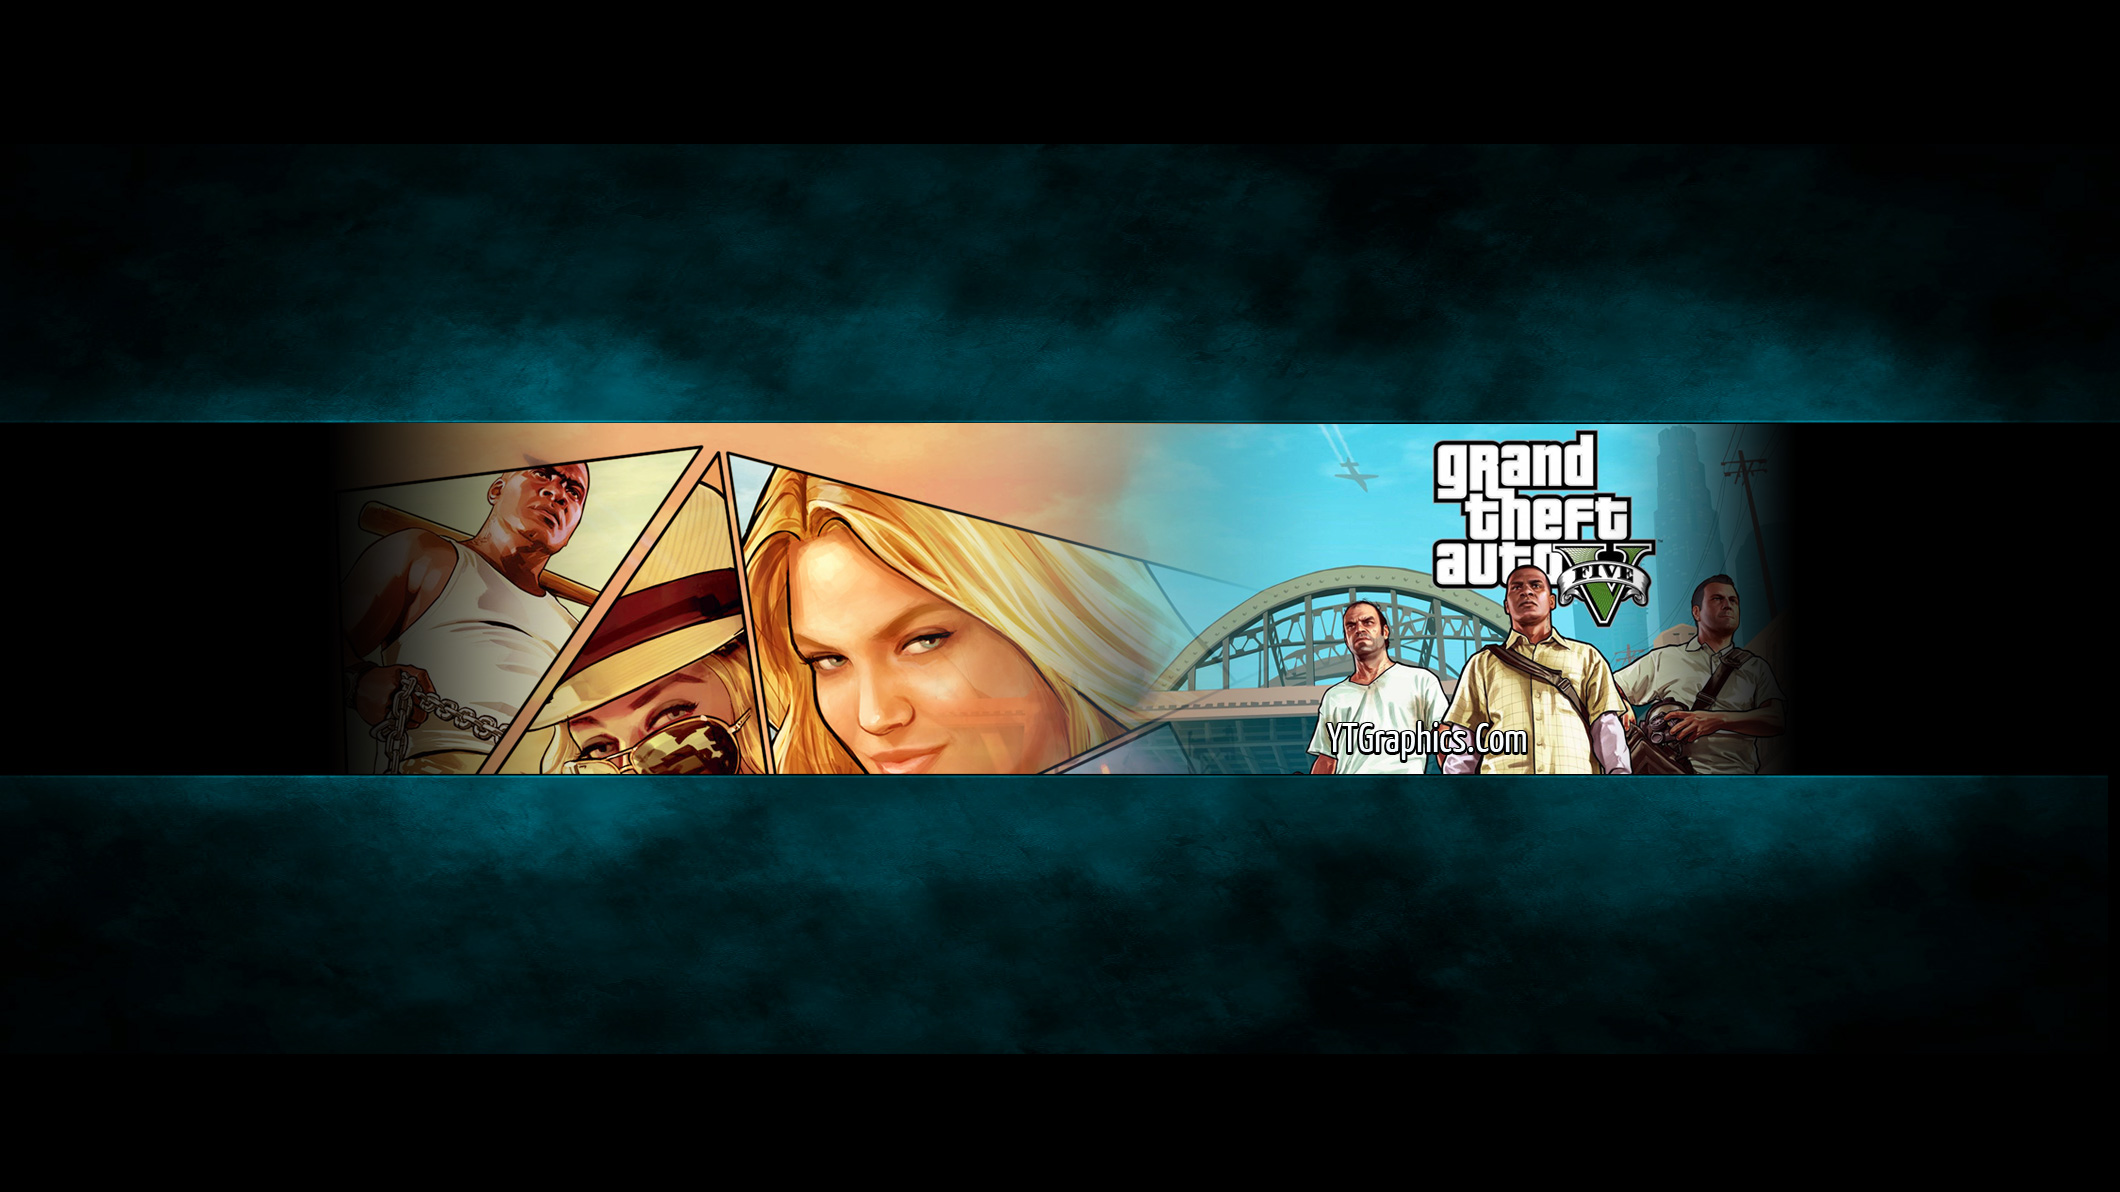 gta 5 channel art banner - youtube channel art banners